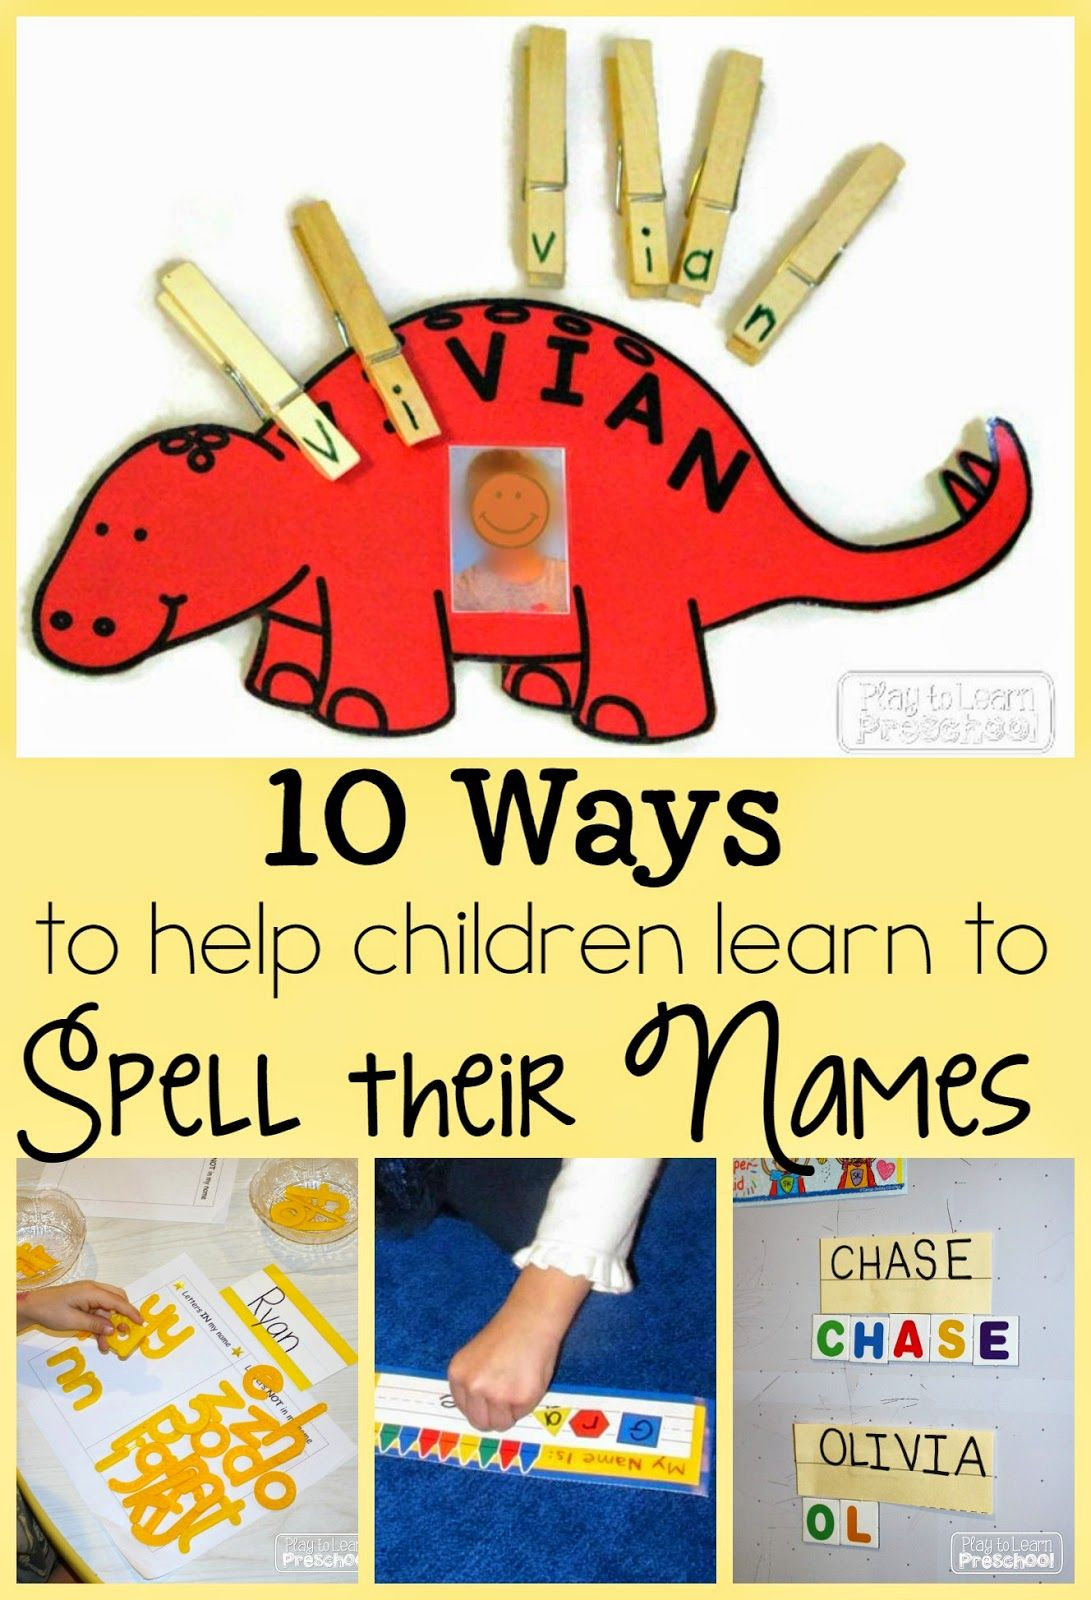 Spelling our Names - 10 Fun Ways to Practice from Play to Learn ...